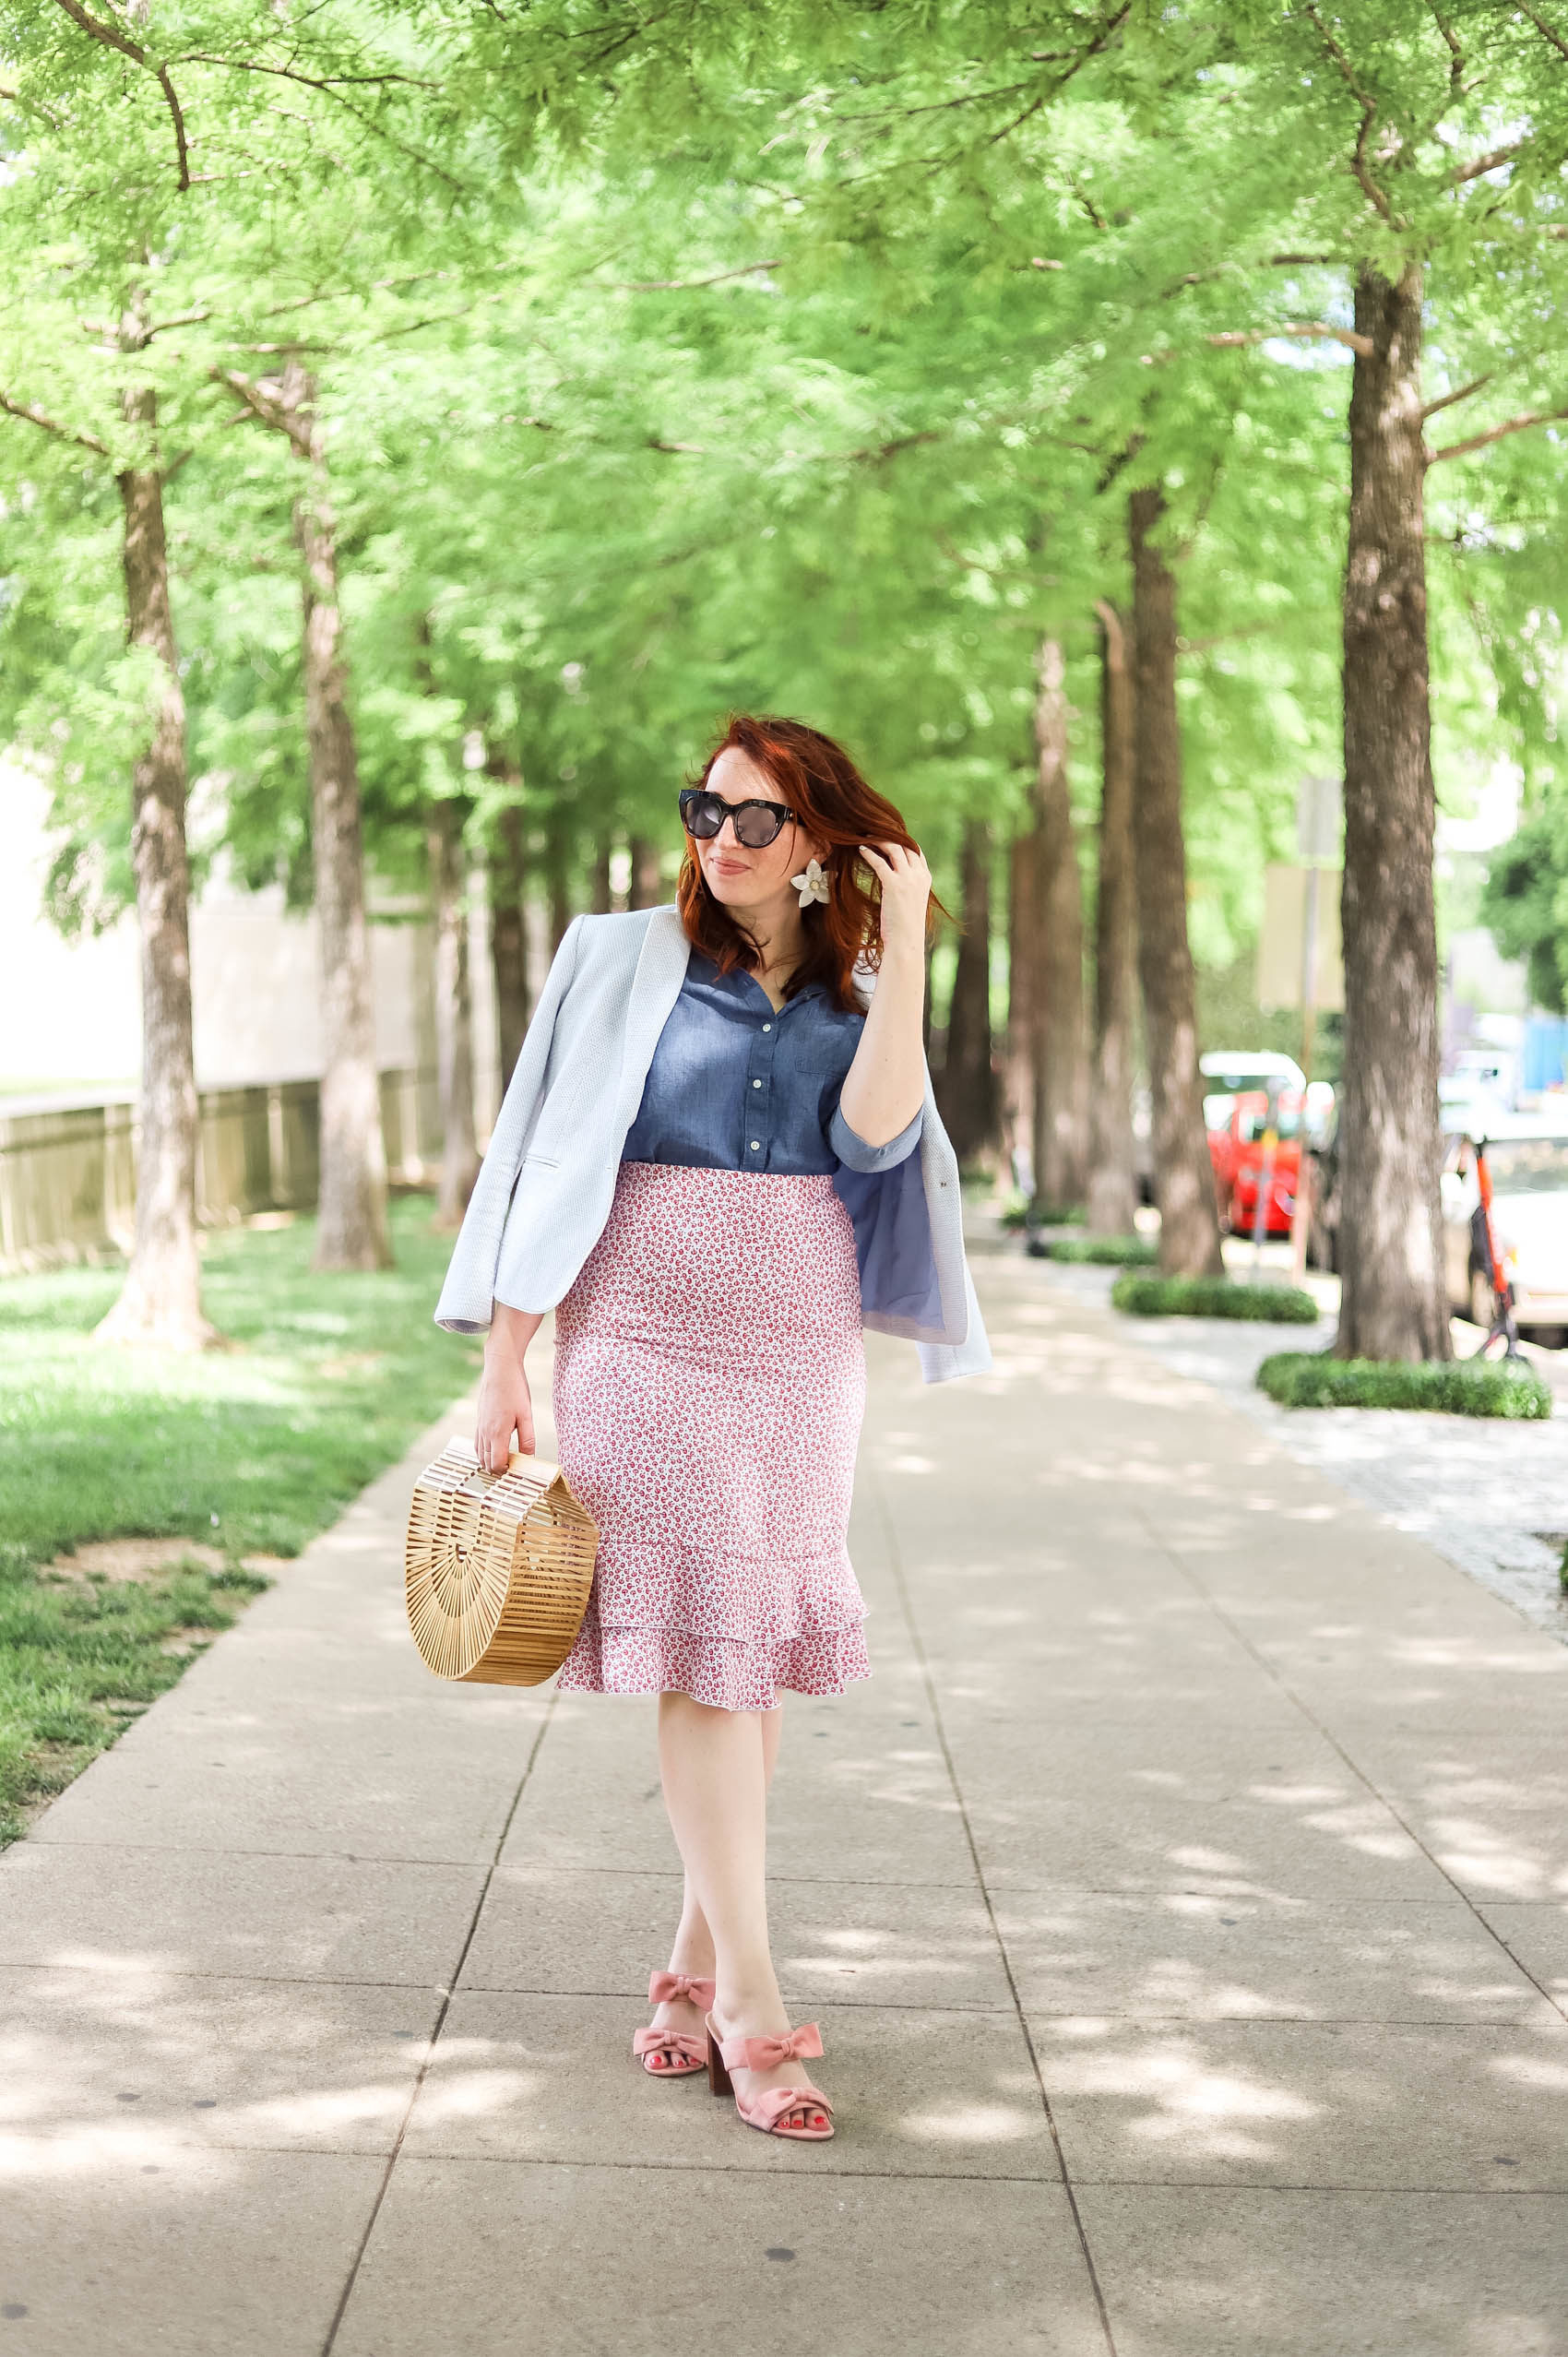 Summer Work Style | Summer Work Clothes Ann Taylor | How to Style a Blazer | How to Wear a Blazer | Fourth of July Outfit | Business Casual Outfit #womensfashion #summerstyle #fourthofjuly #outfitideas #summersales #fourthofjulyoutfits #fashion #style